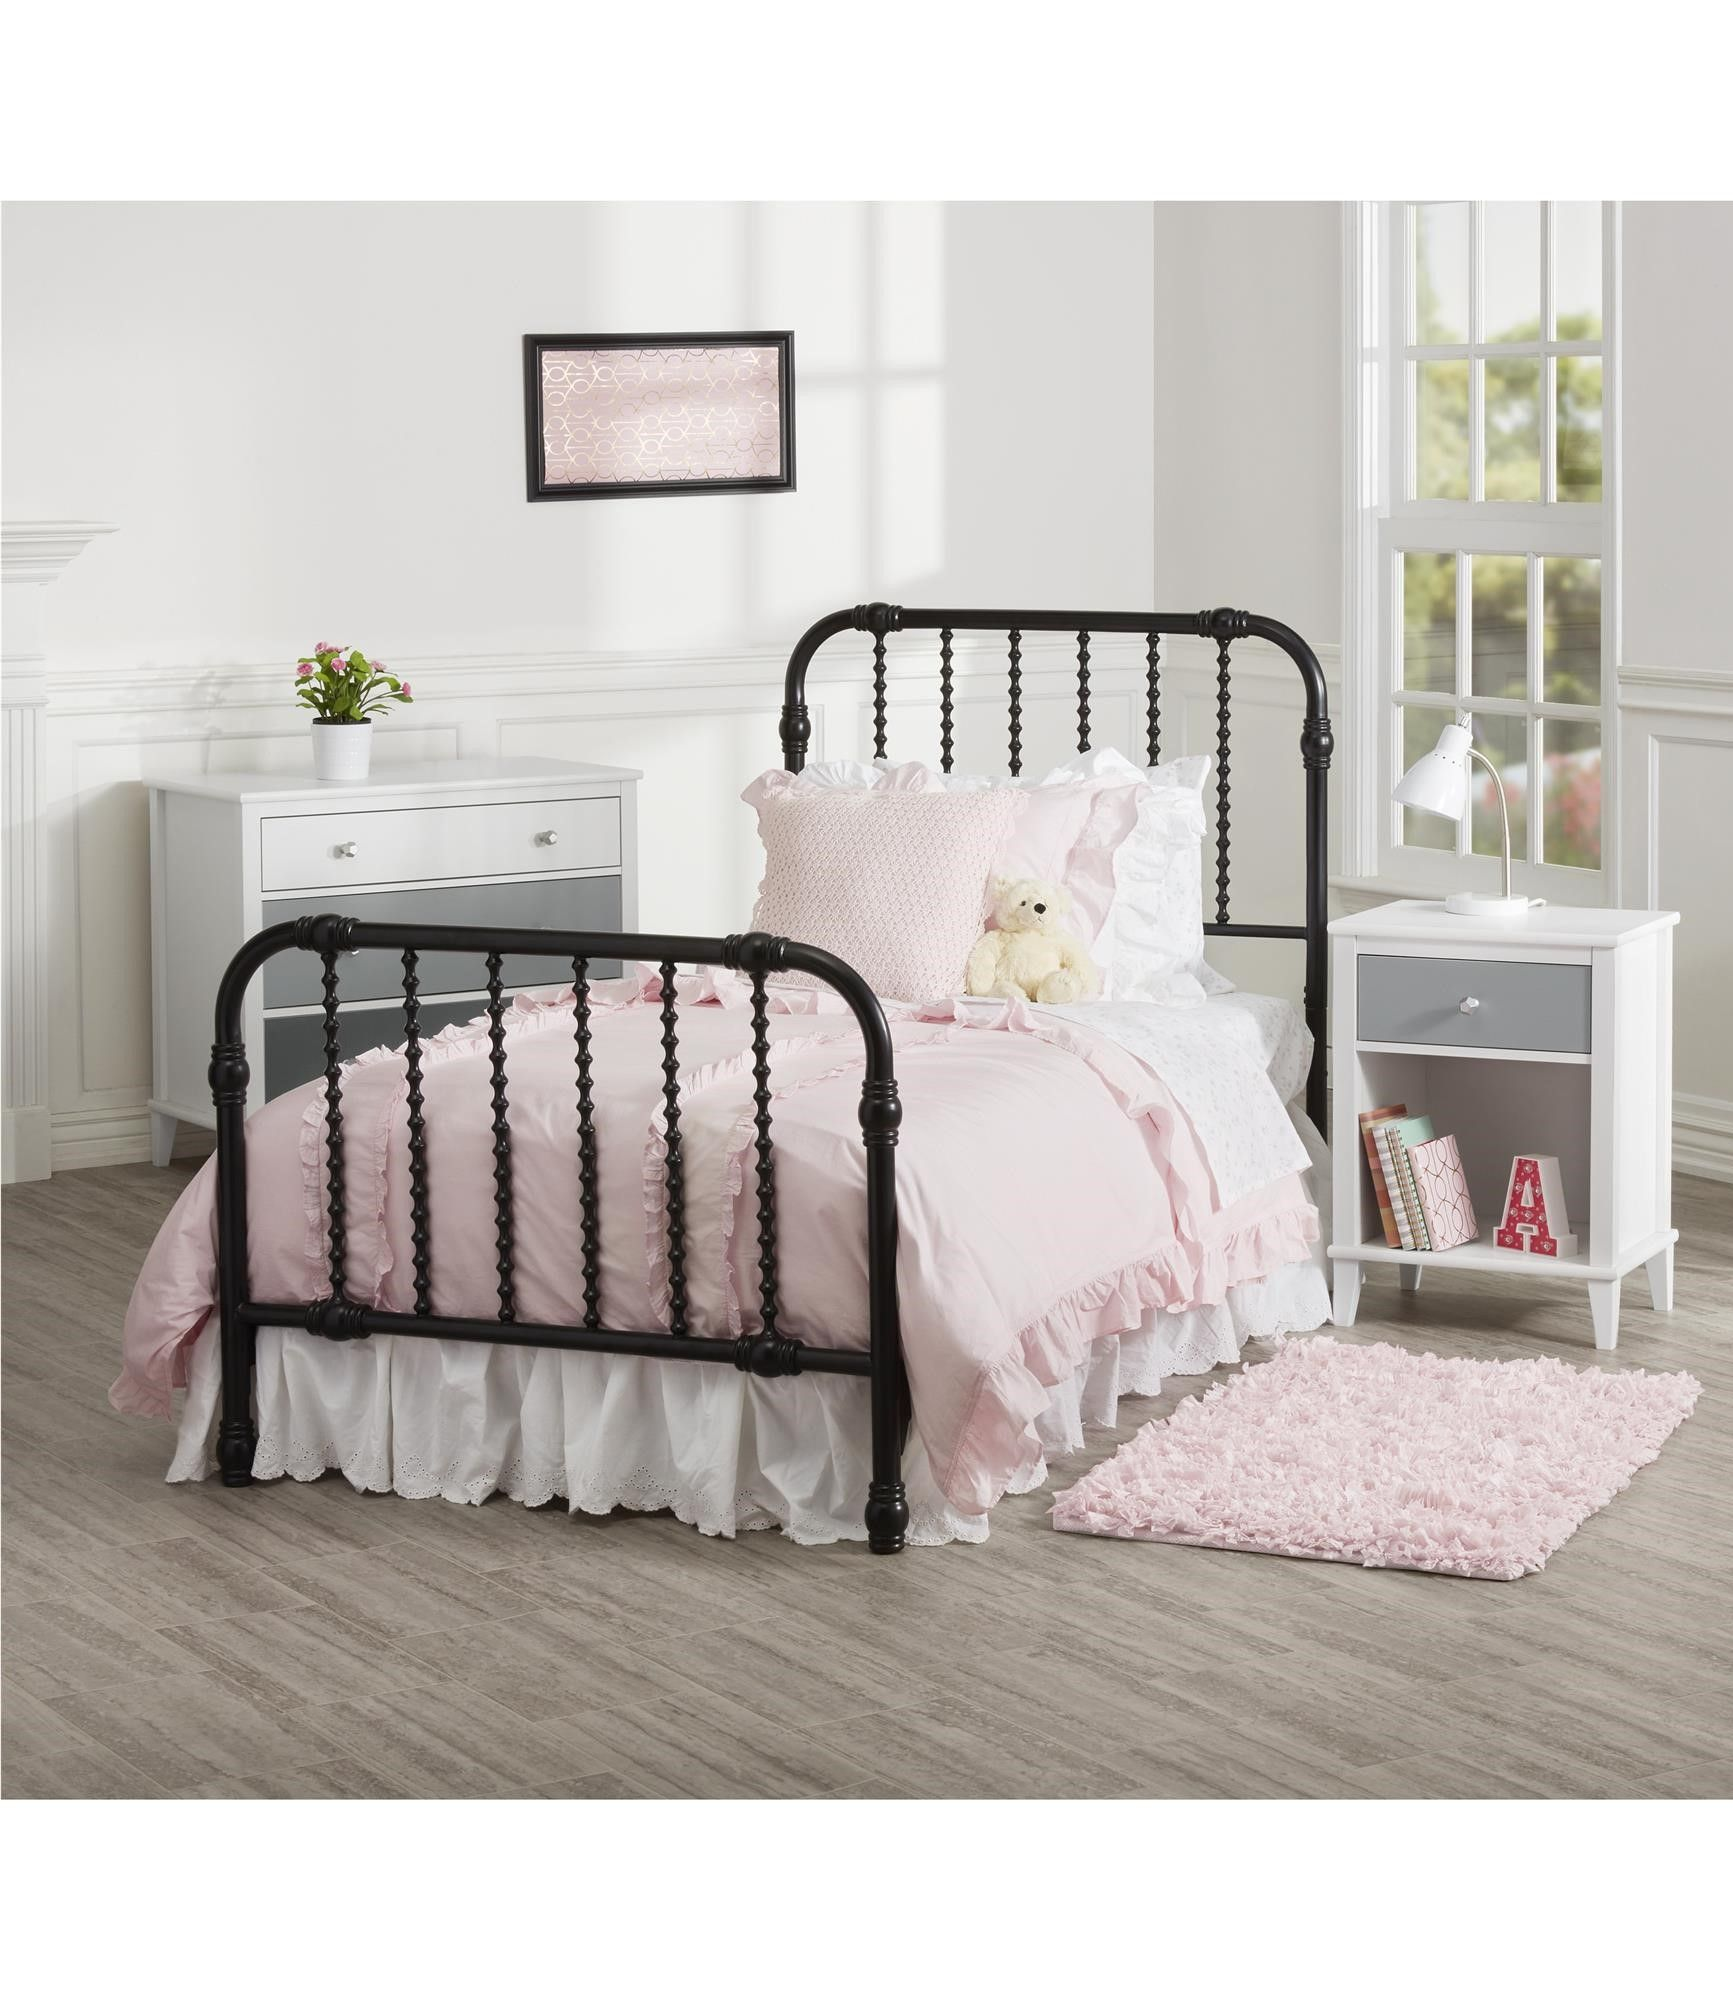 Home Metal beds, Bed furniture, Full bed frame